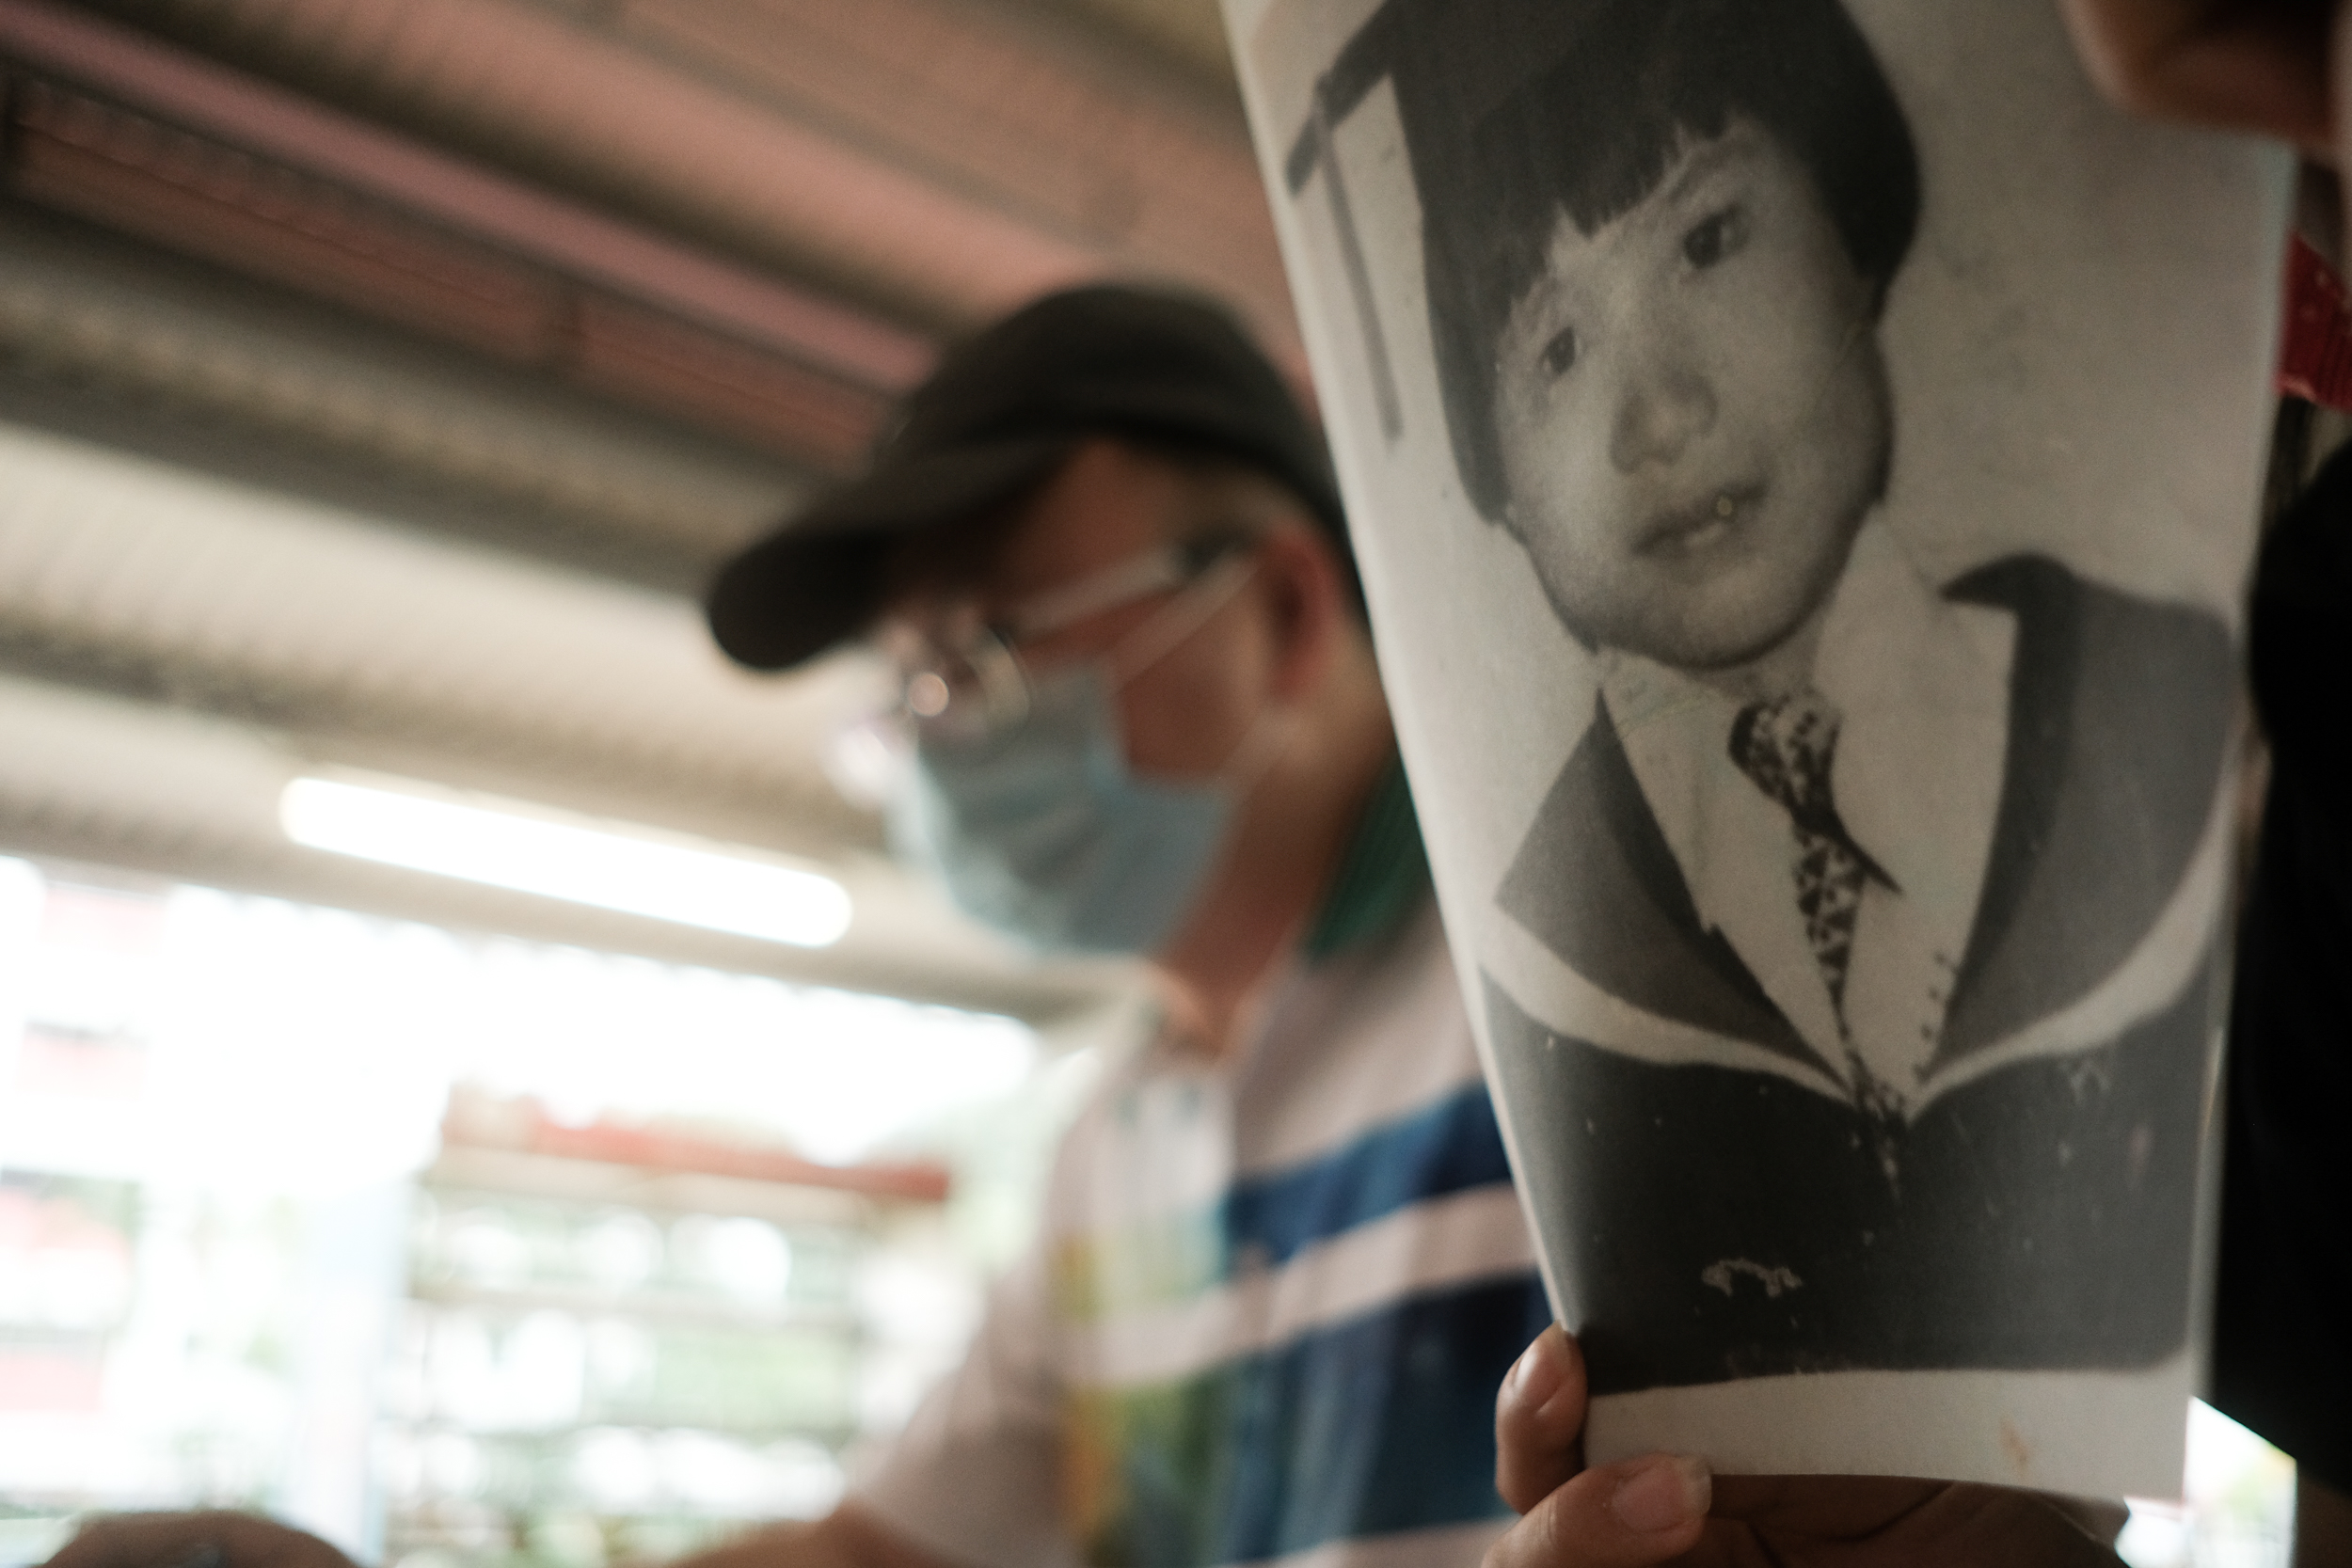 Image of Goh Leng Hai next to a picture of his sister